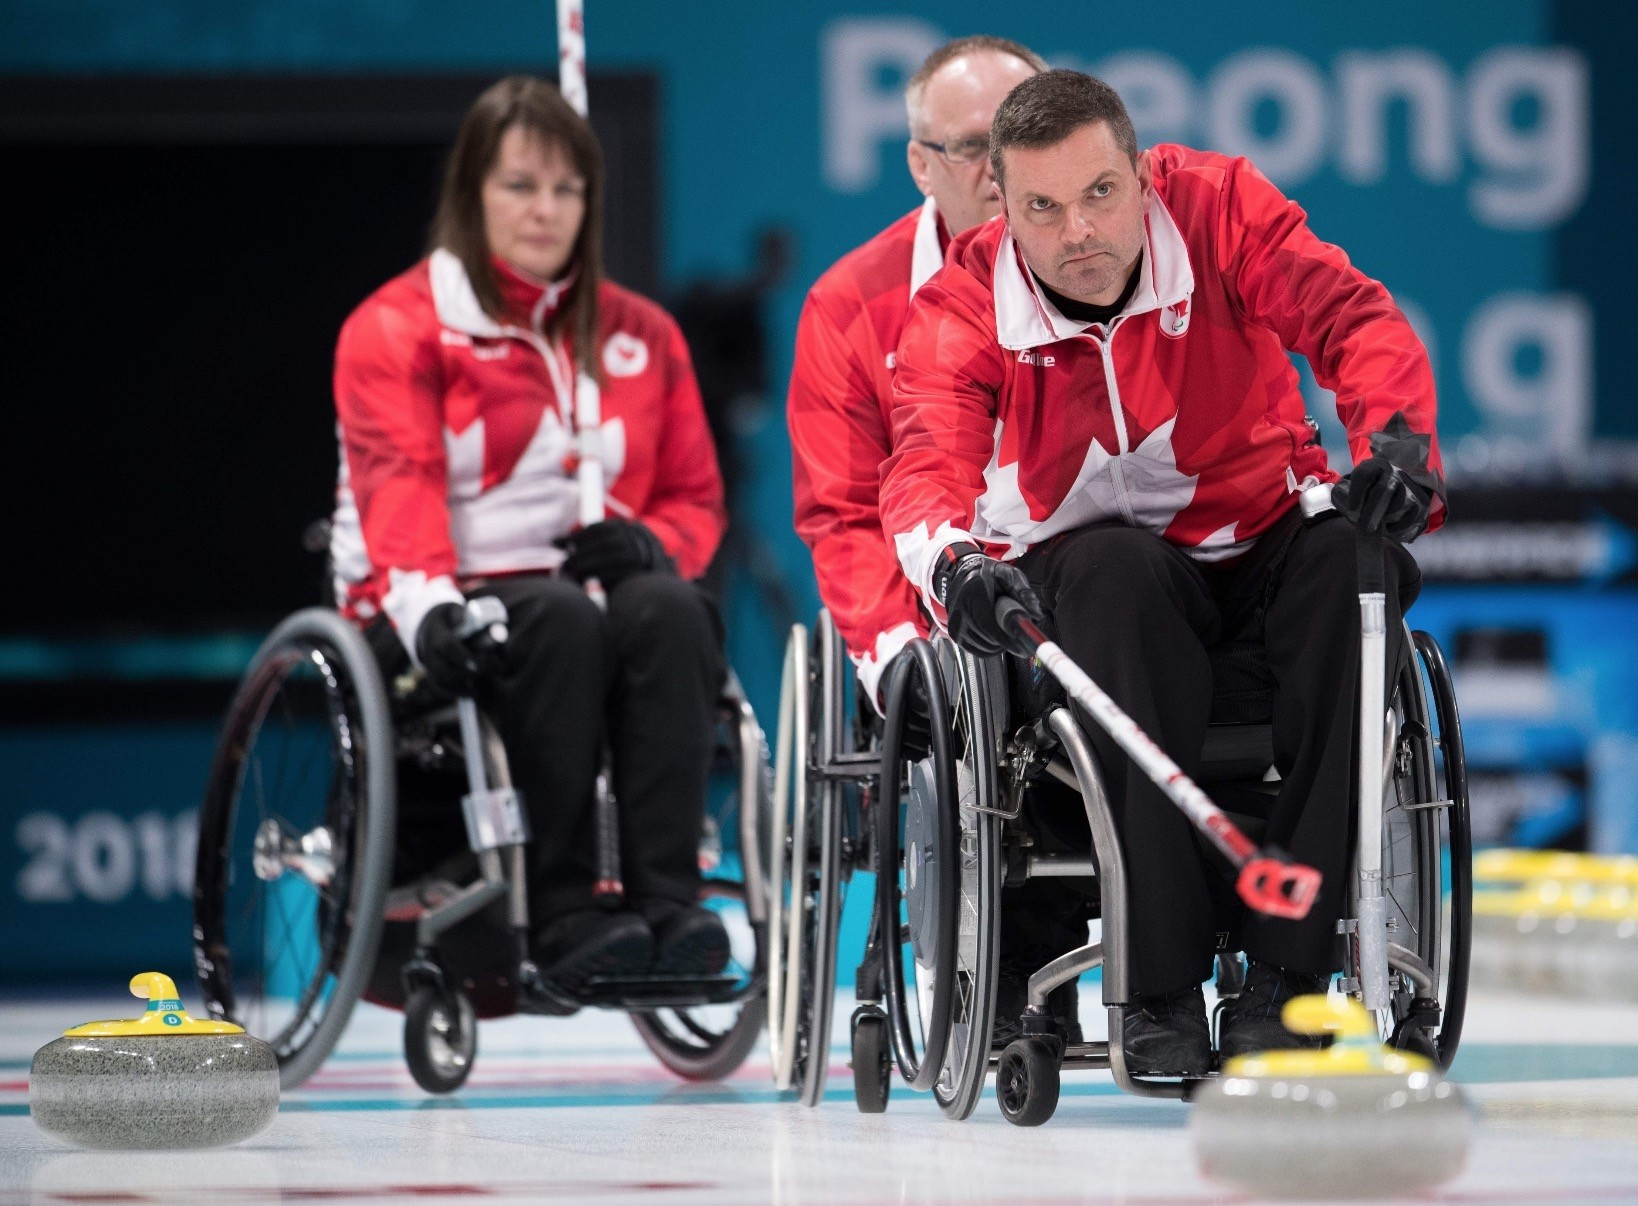 Canadau2019s Mark Ideson (R) attends a wheelchair curling practice ahead of the Pyeongchang 2018 Paralympic Winter Games at the Gangneung Curling Centre.